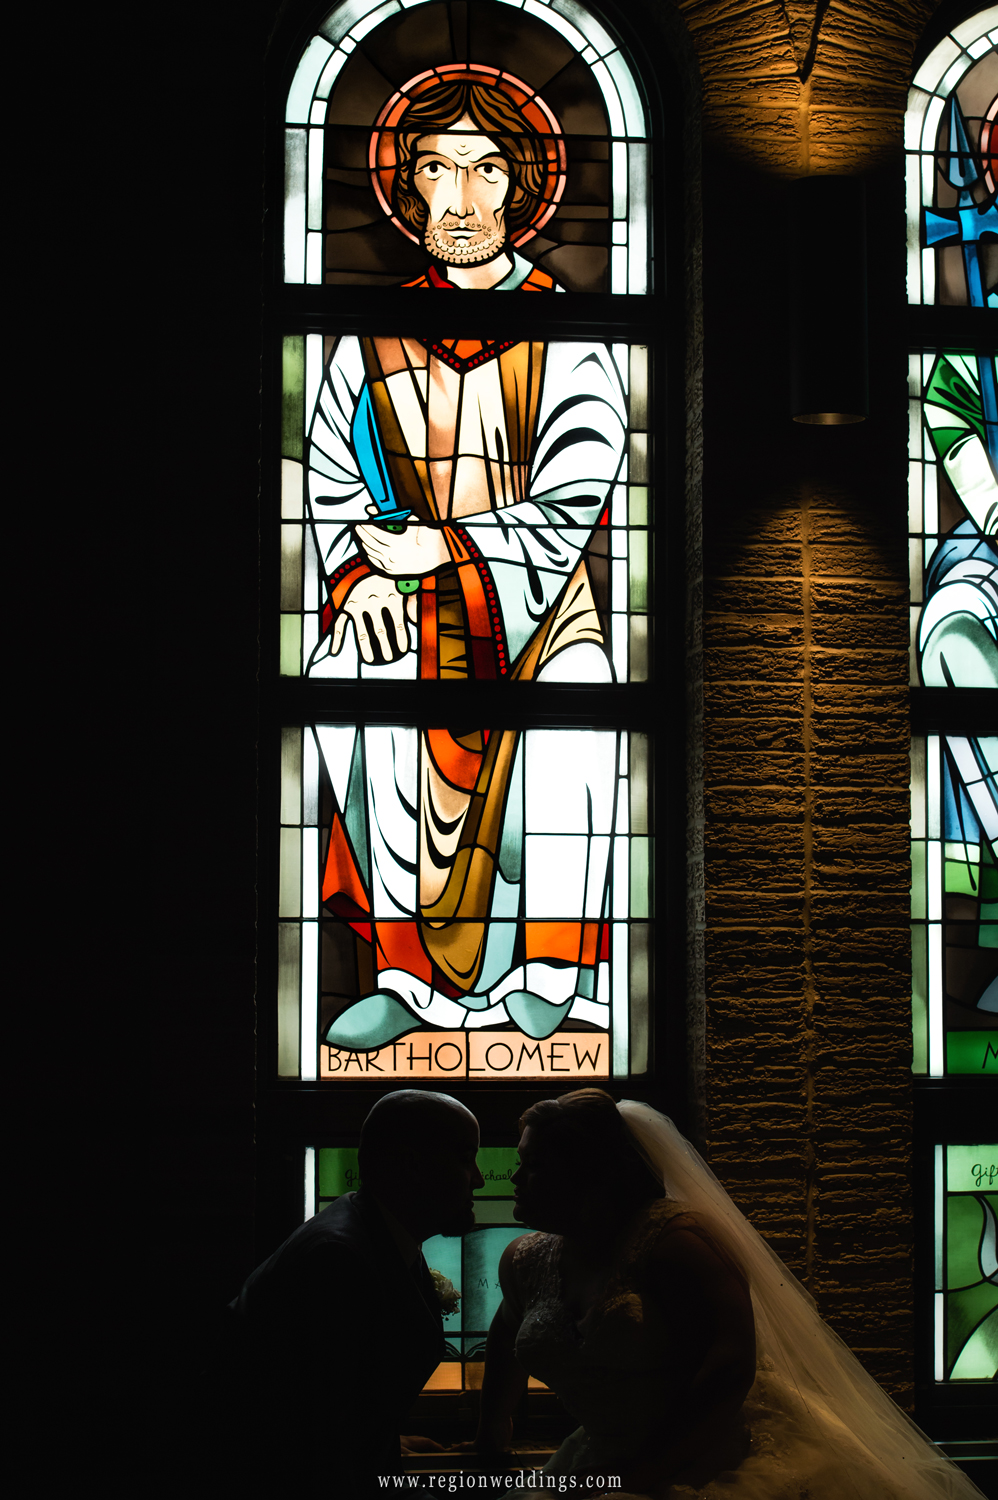 A silhouette of the bride and groom in front of stained glass windows at Saint Maria Goretti Church in Dyer, Indiana.